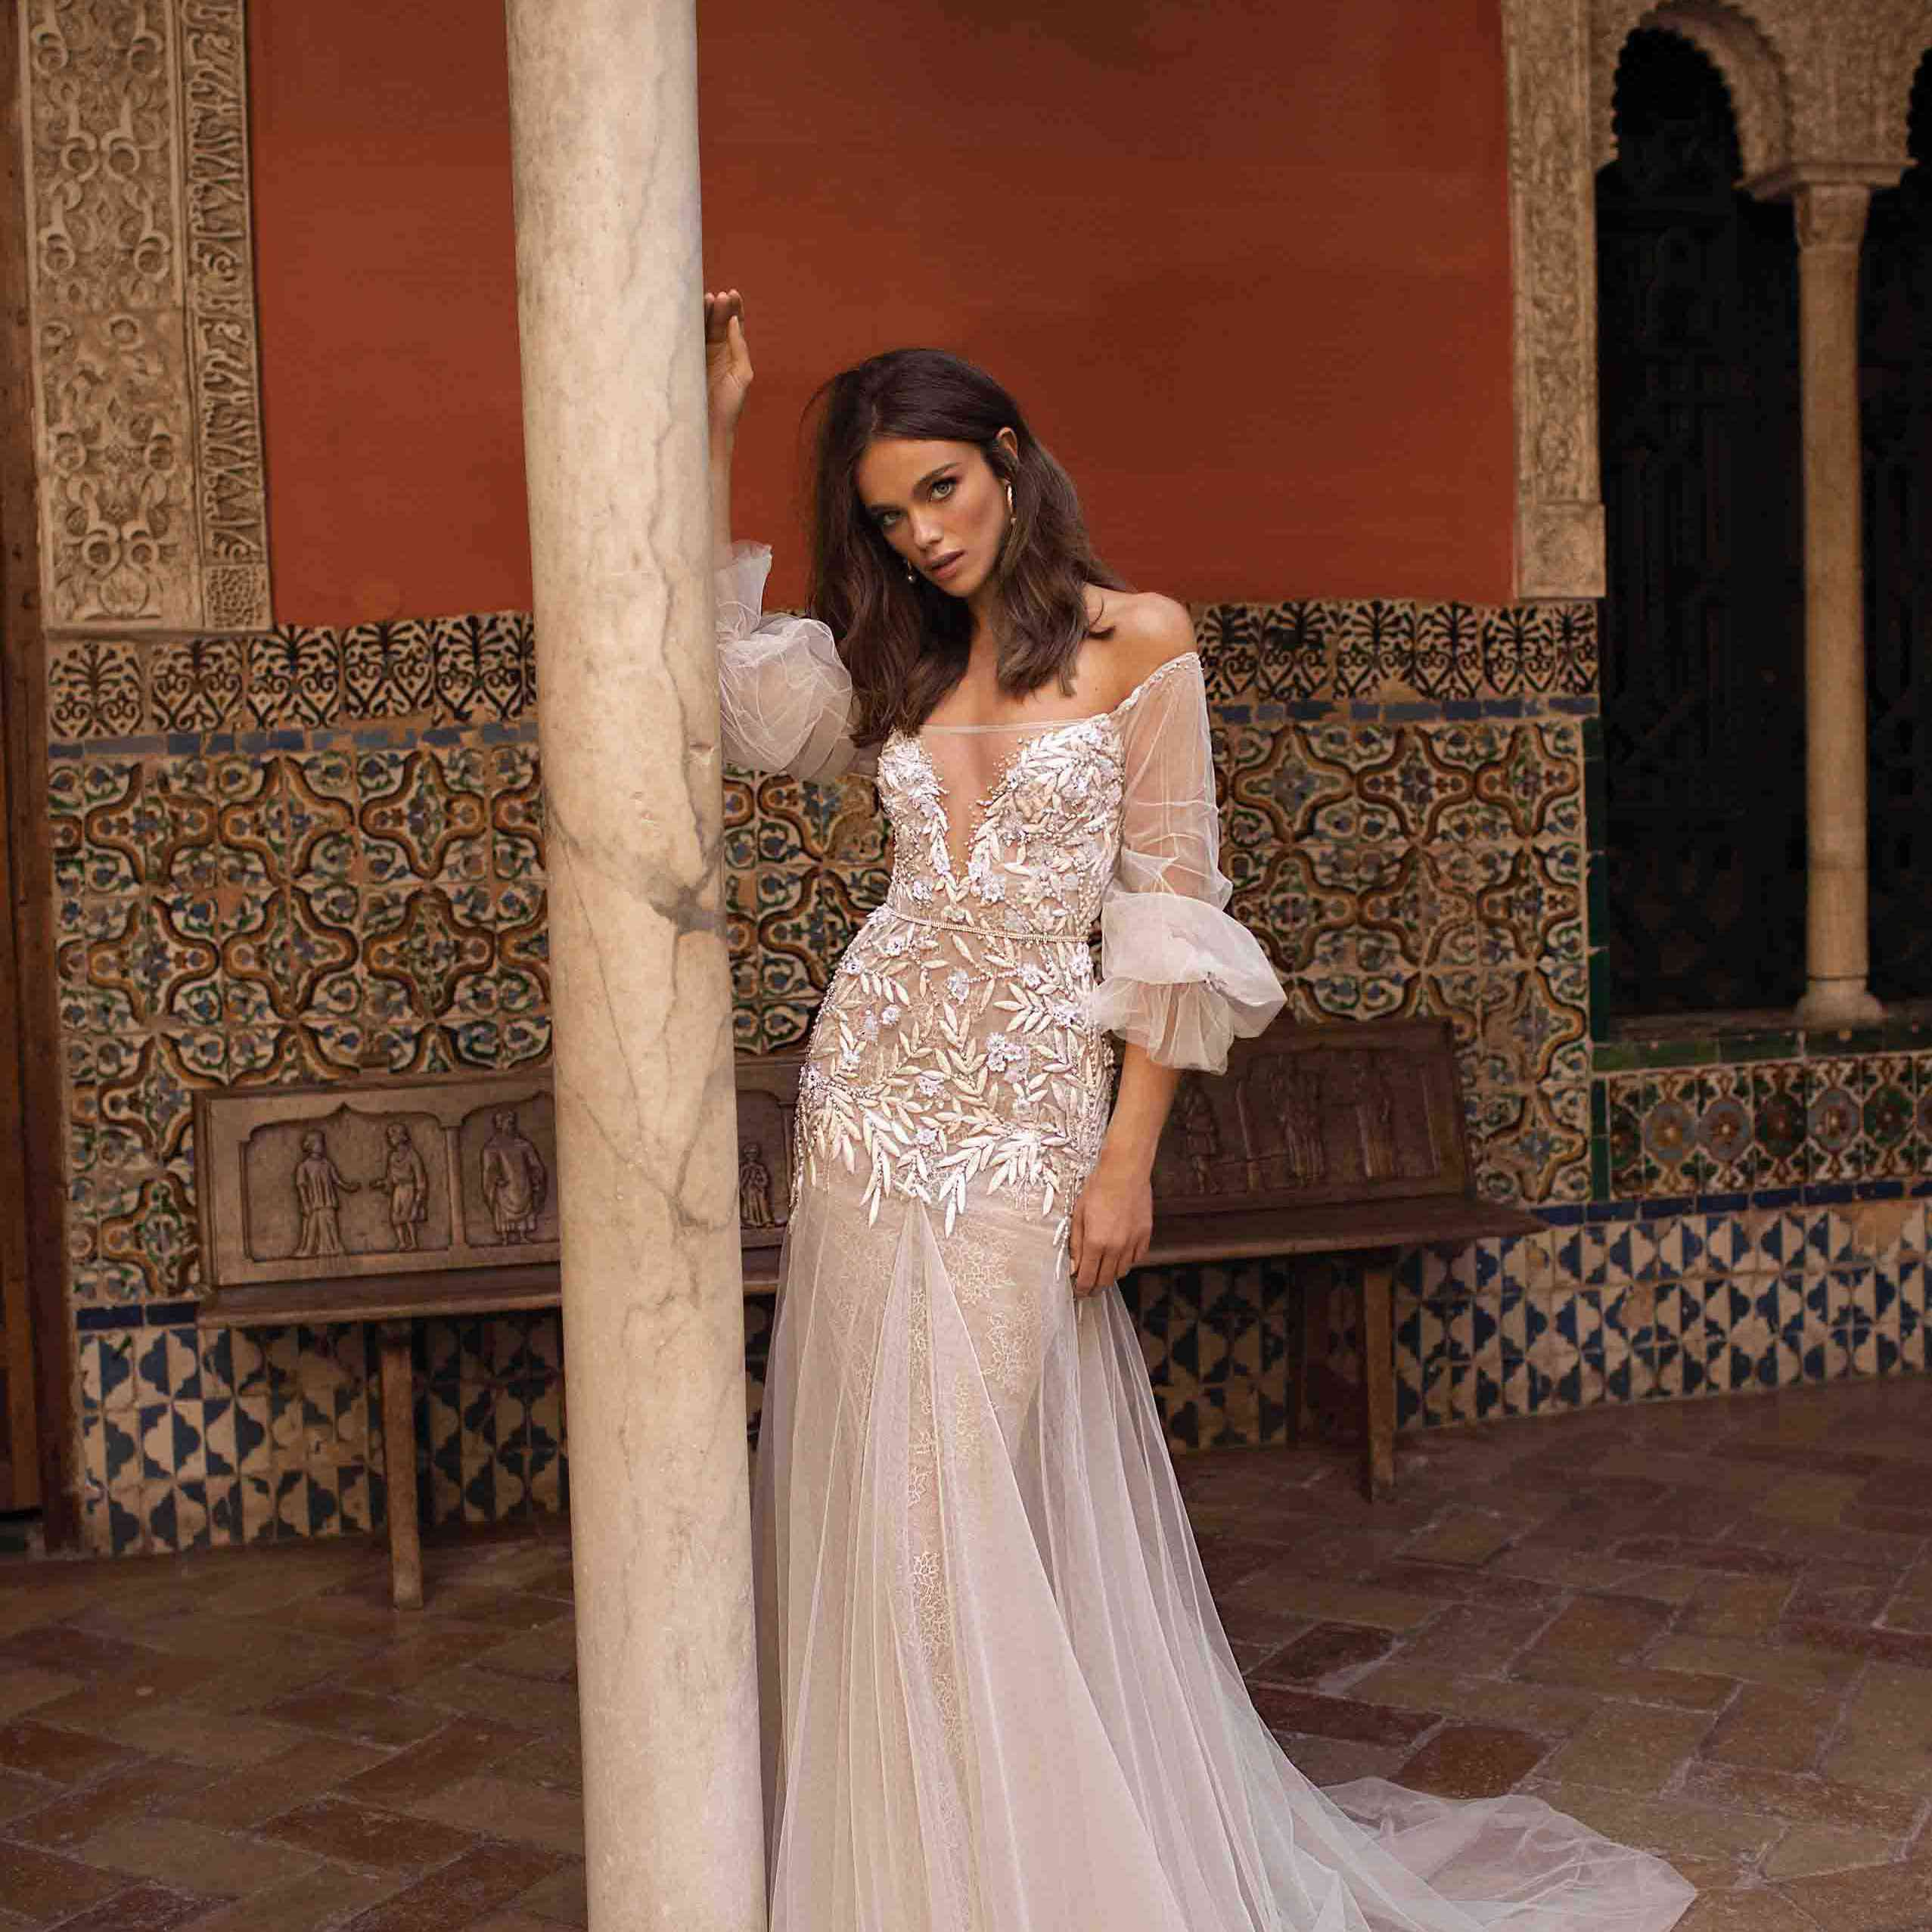 Model in illusion neckline tulle wedding gown with floral bodice and off-the-shoulder three-quarter sleeves